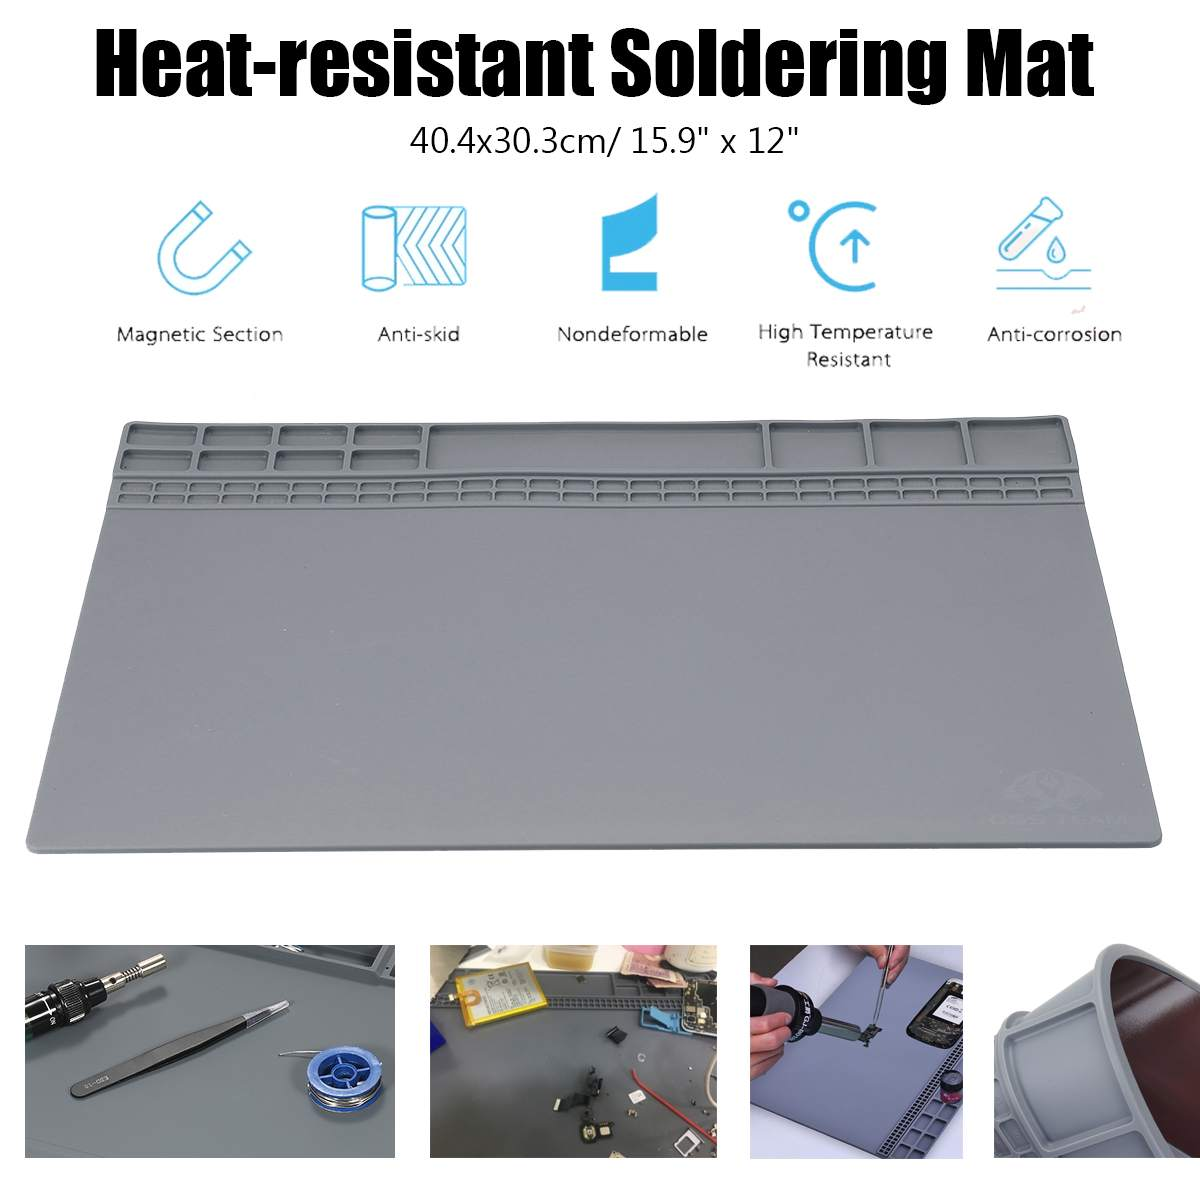 Insulation Pad Heat Resistant Soldering Station Silicon Soldering Mat Work Pad Desk Platform Soldering Repair Station(China)